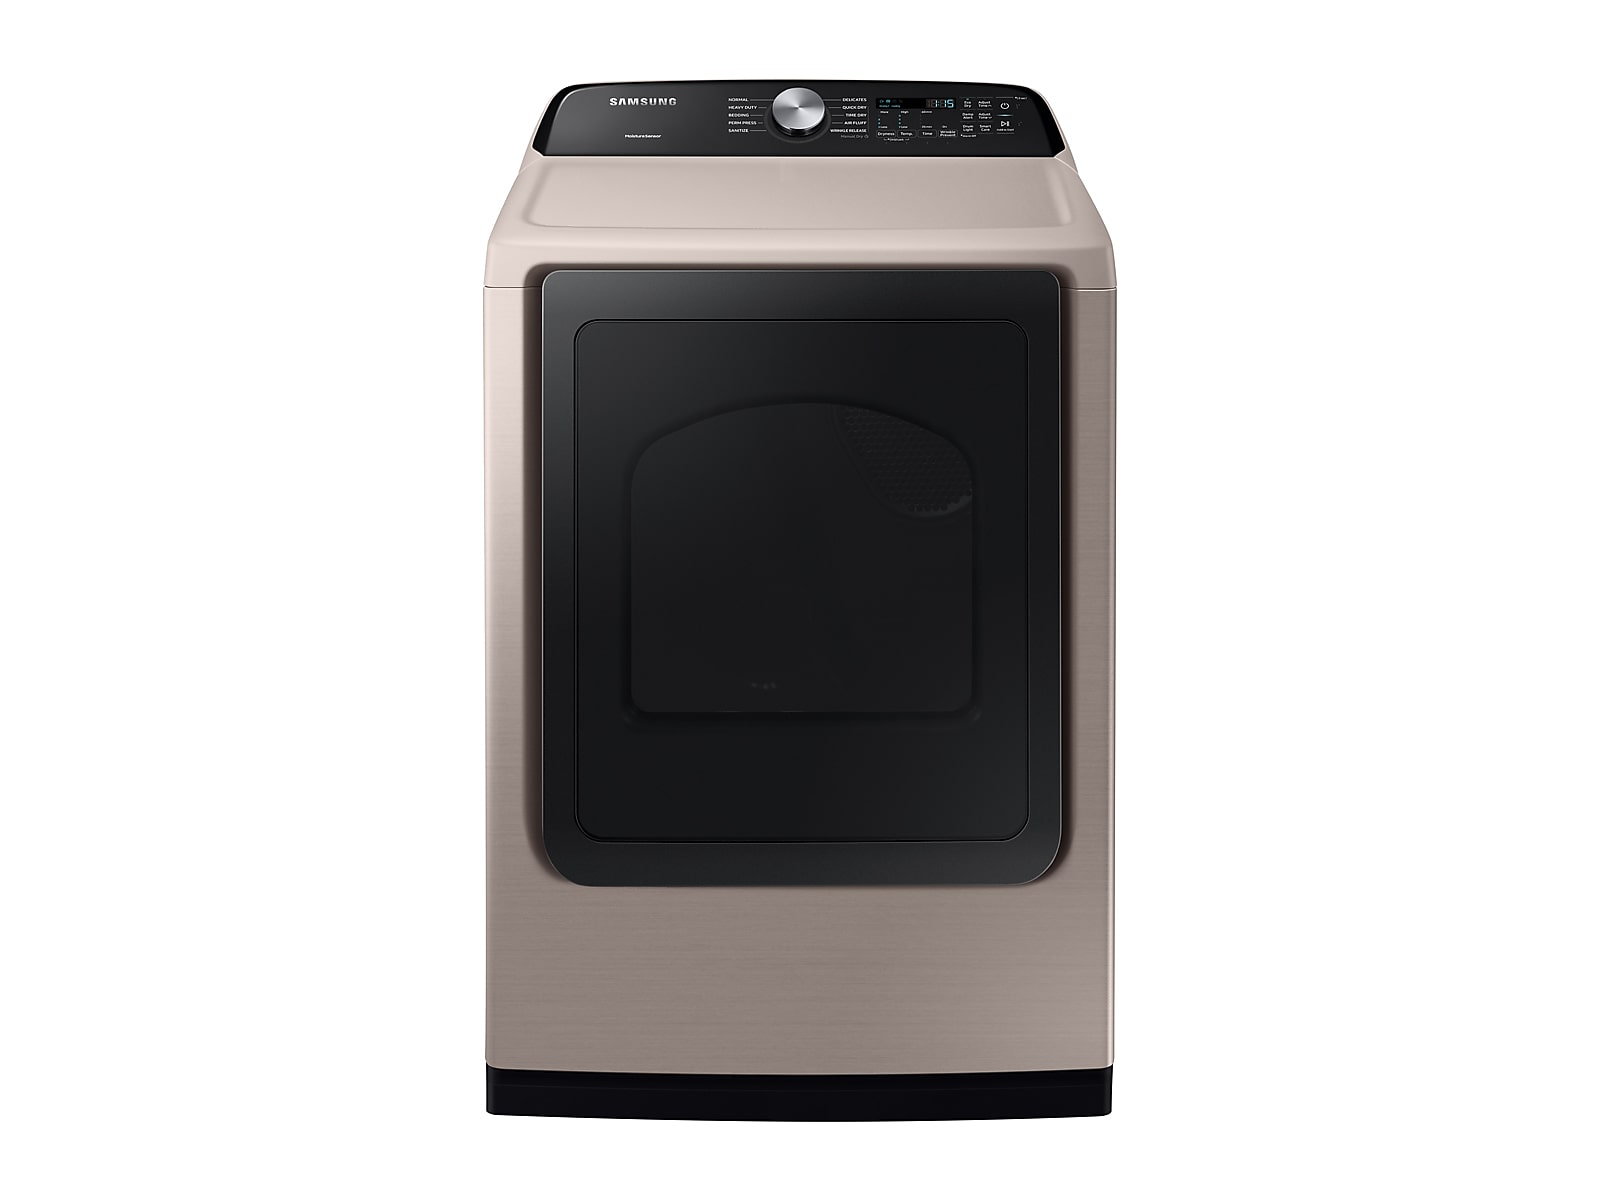 Samsung coupon: Samsung 7.4 cu. ft. Electric Dryer with Sensor Dry in Champagne(DVE50T5300C/A3)